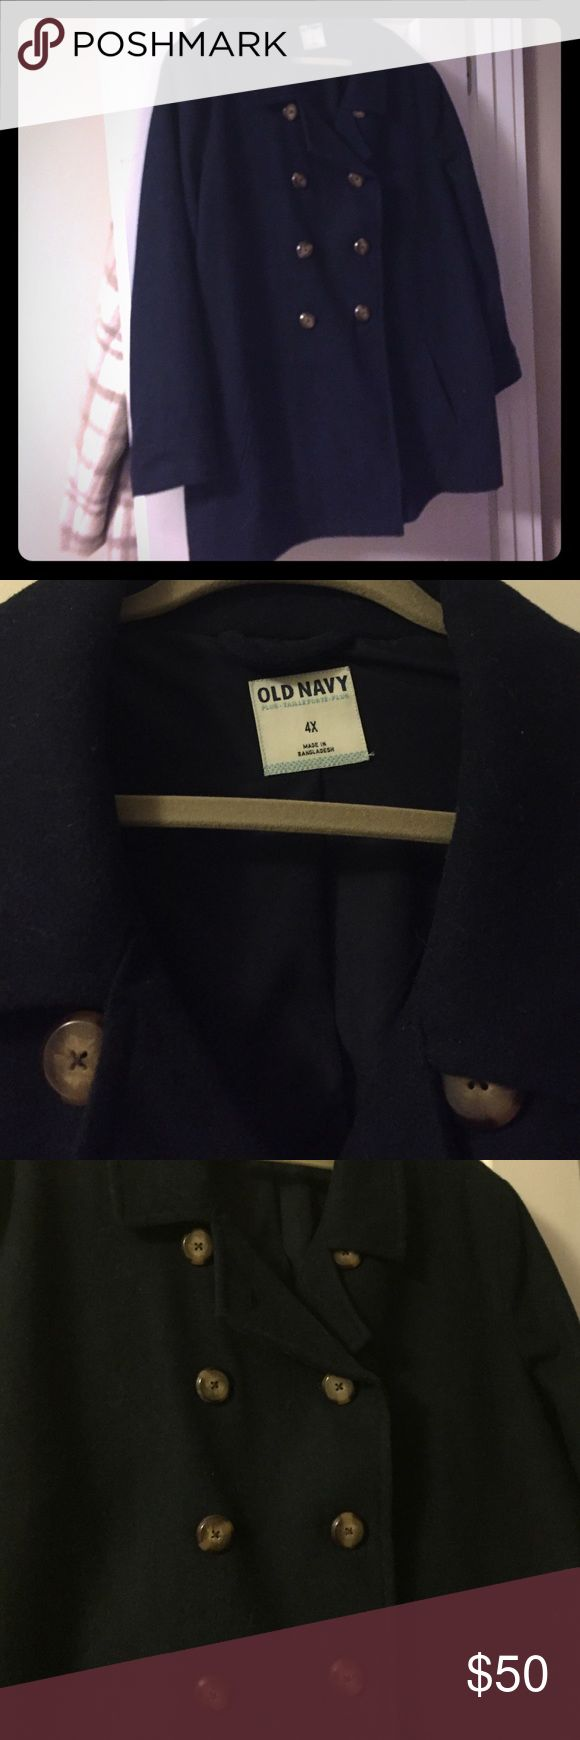 Navy Blue pea coat Old Navy navy blue wool pea coat, size 4X. Brown buttons. Worn maybe a couple of times. Old Navy Jackets & Coats Pea Coats